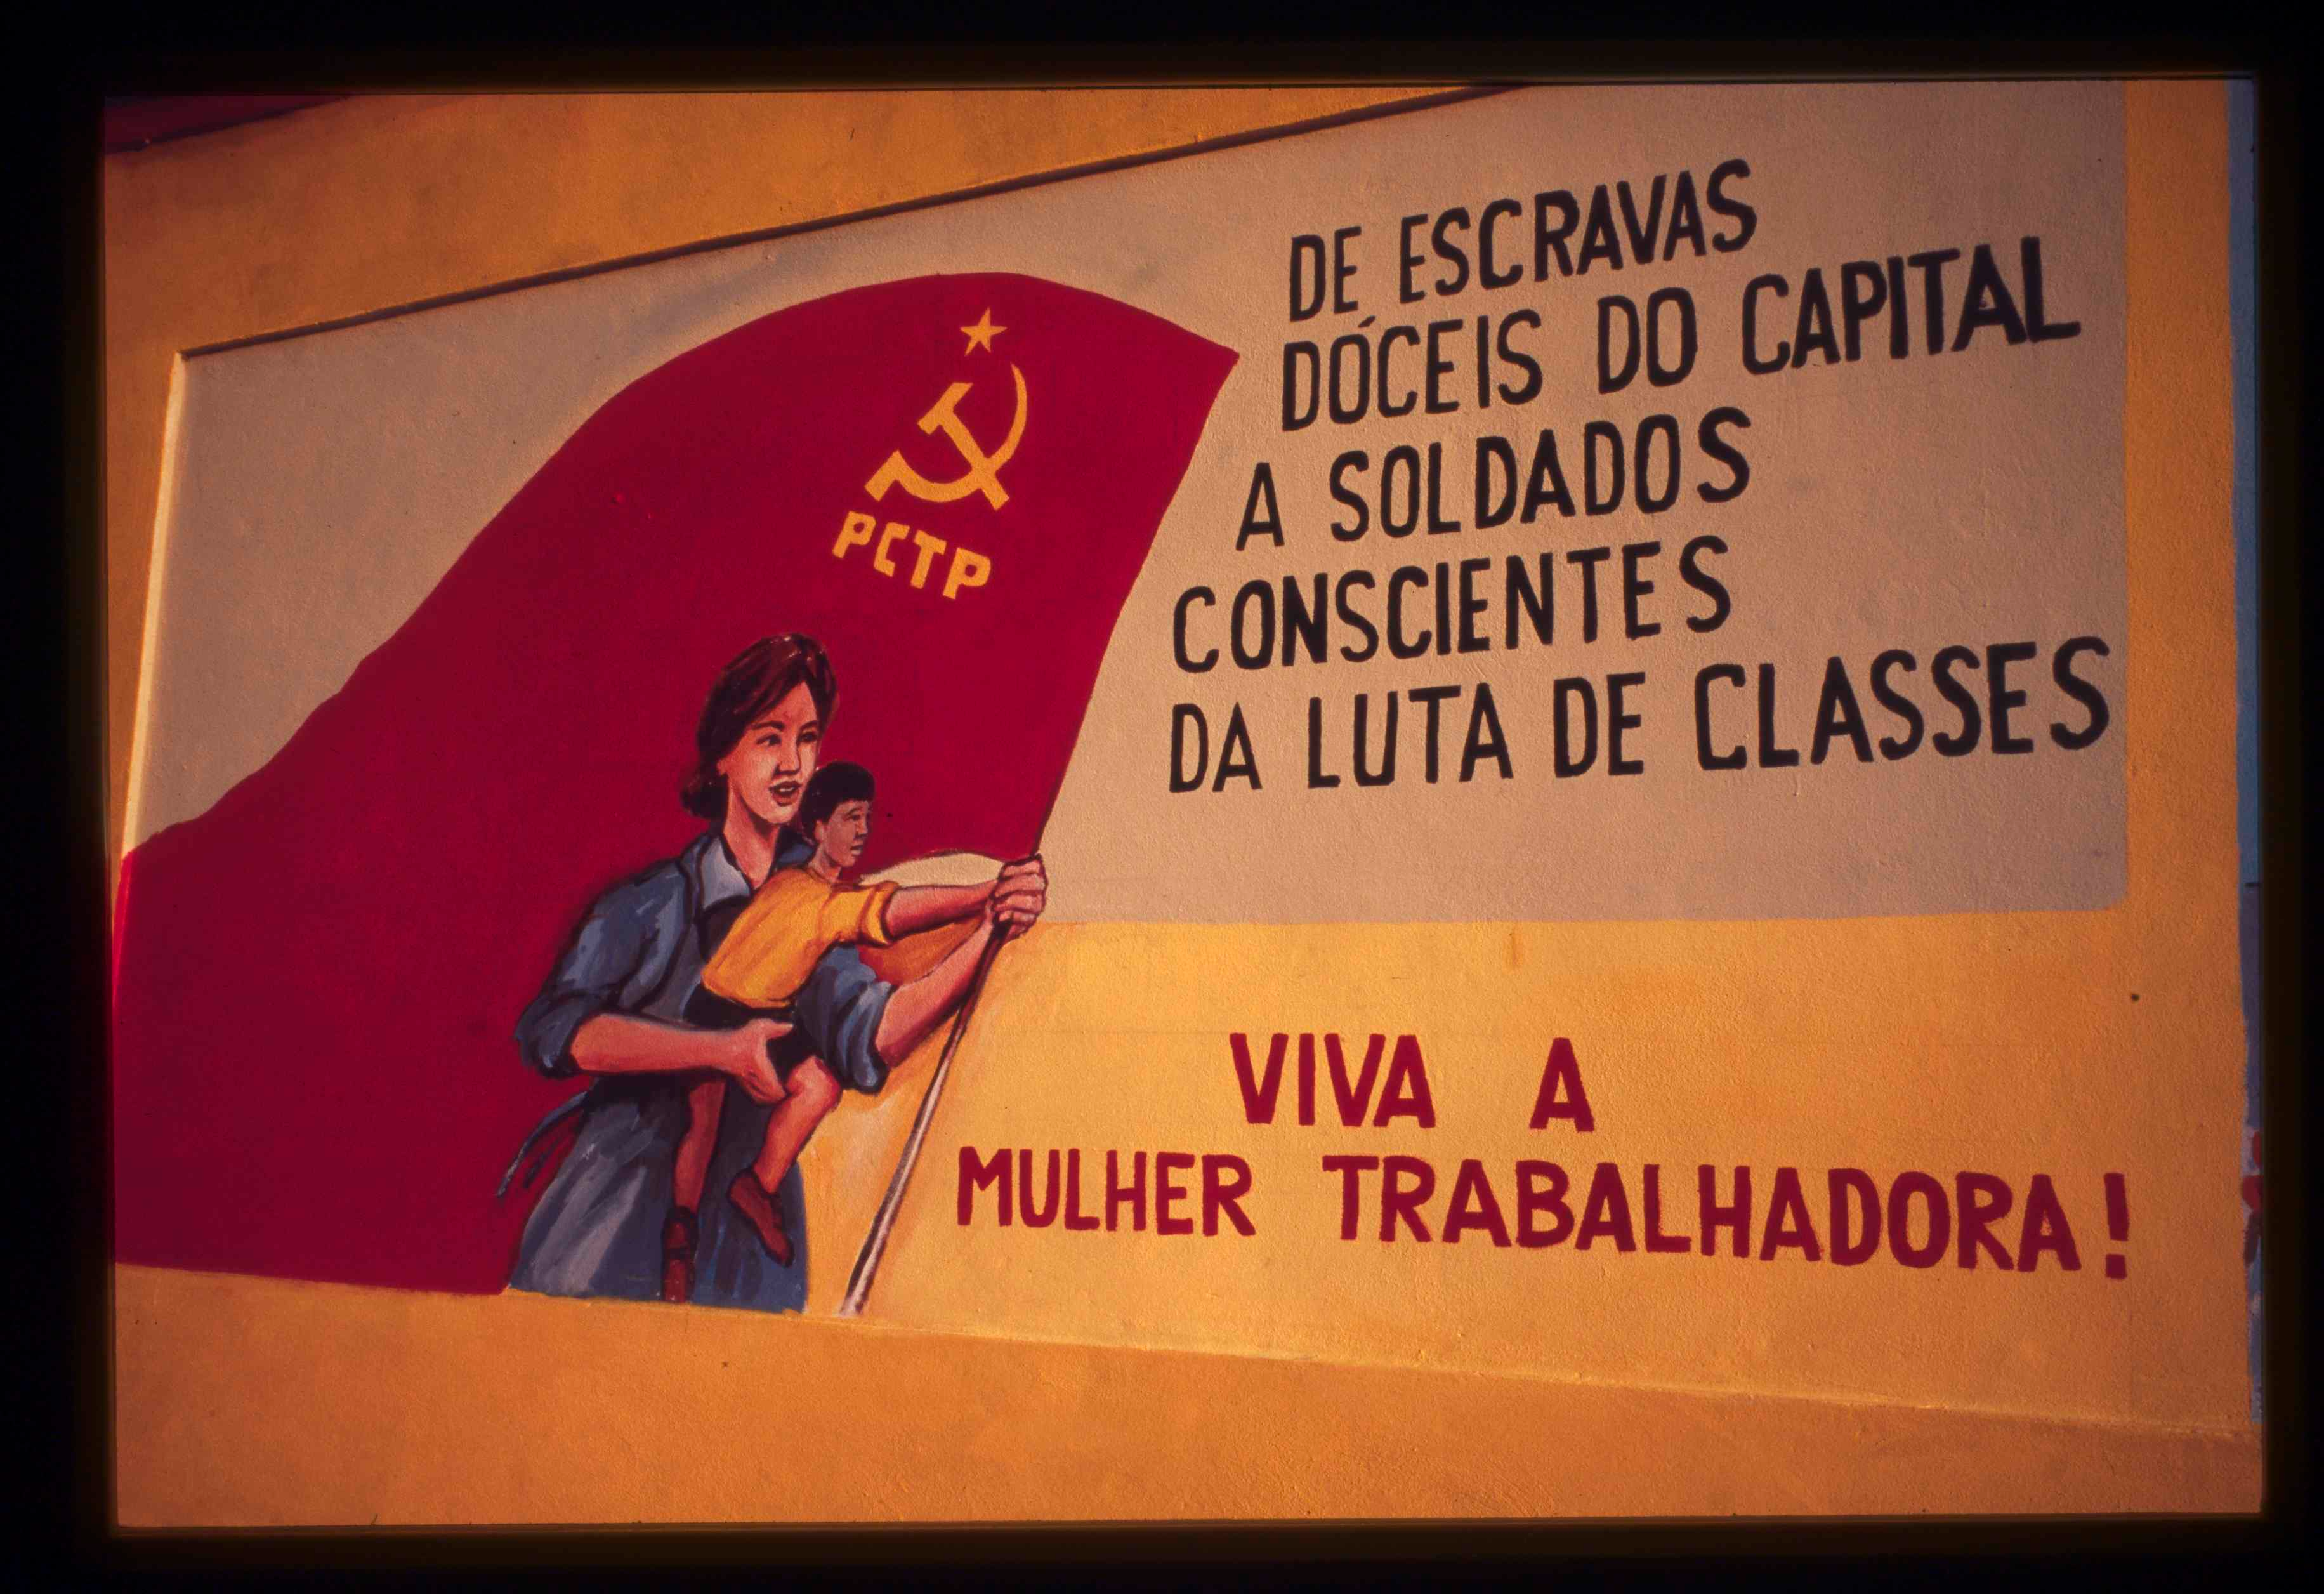 PCTP-MRPP mural in Alcântara commemorating the 18th of September, the date of the founding of the party.